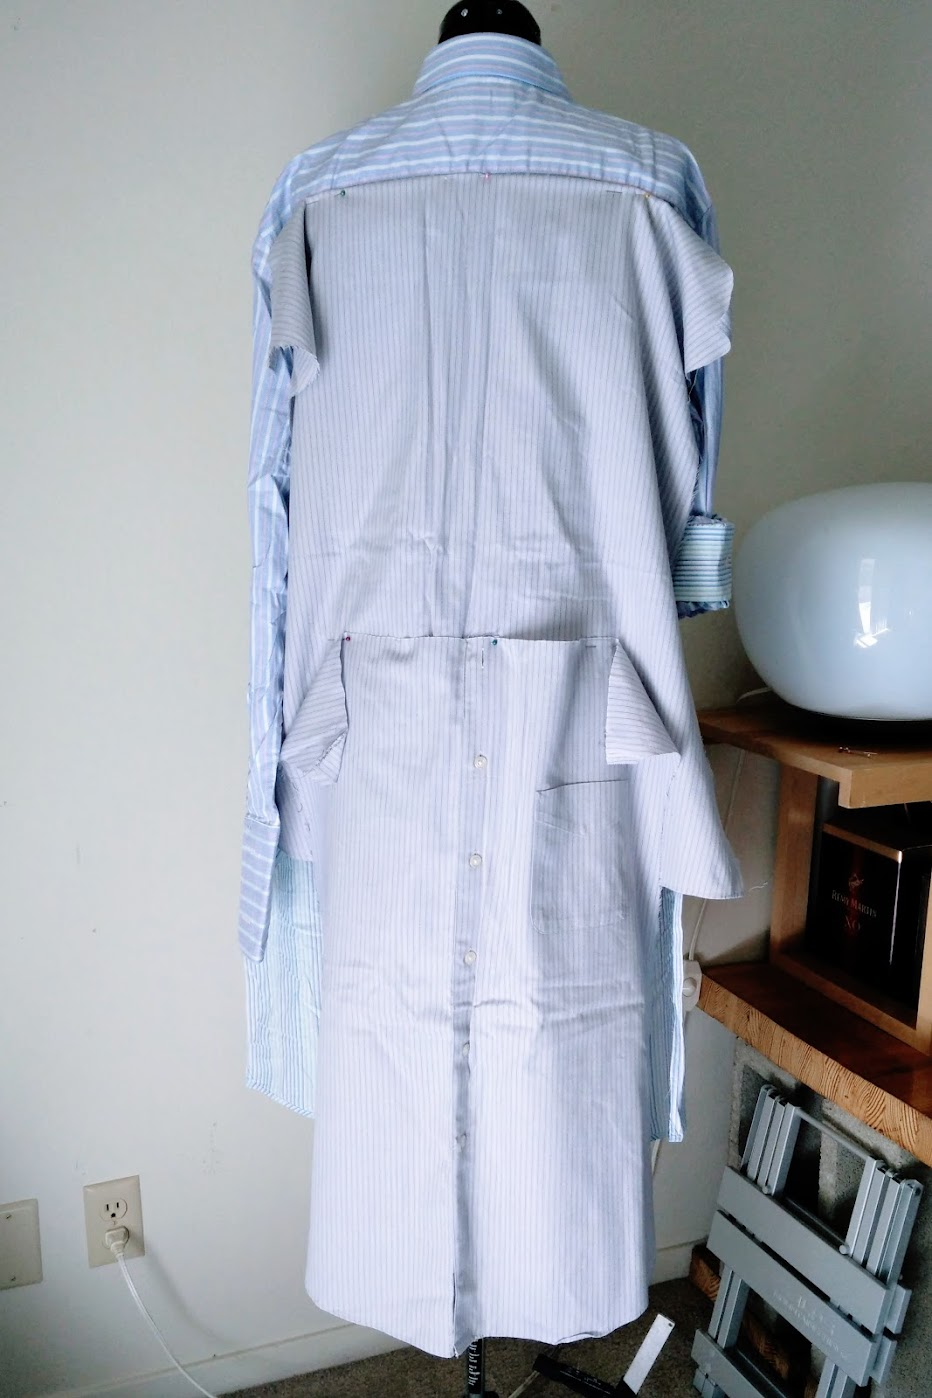 Preparations: DIY Shirt Dress with Bow Waist Tie - DIY Fashion Garments | fafafoom.com